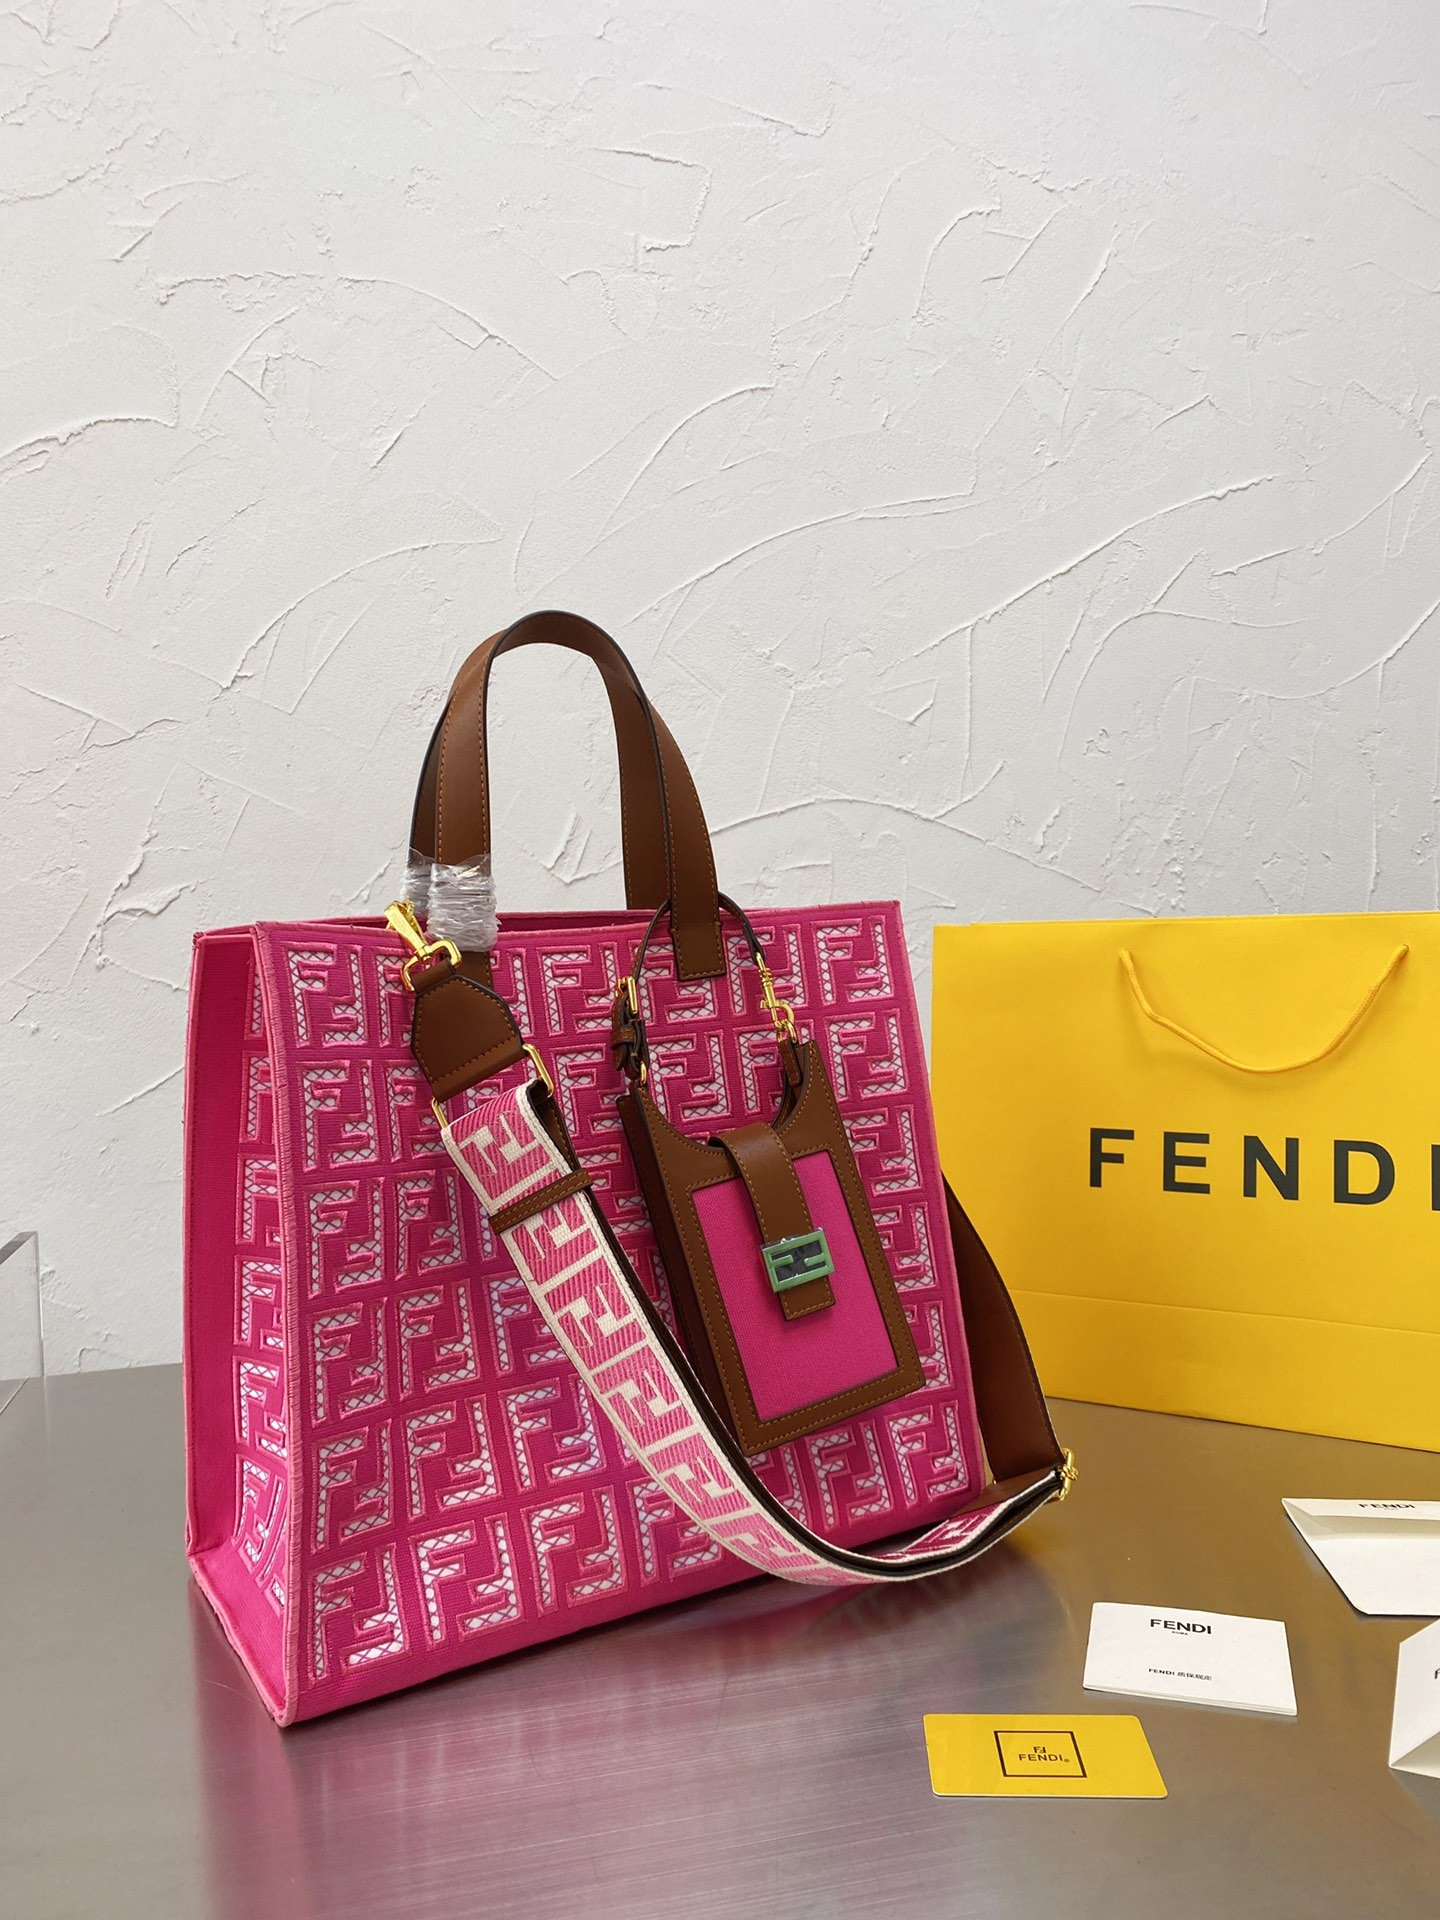 Image of Fendi 2021 Women Leather Shoulder Bags Embroidery Satchel Tote